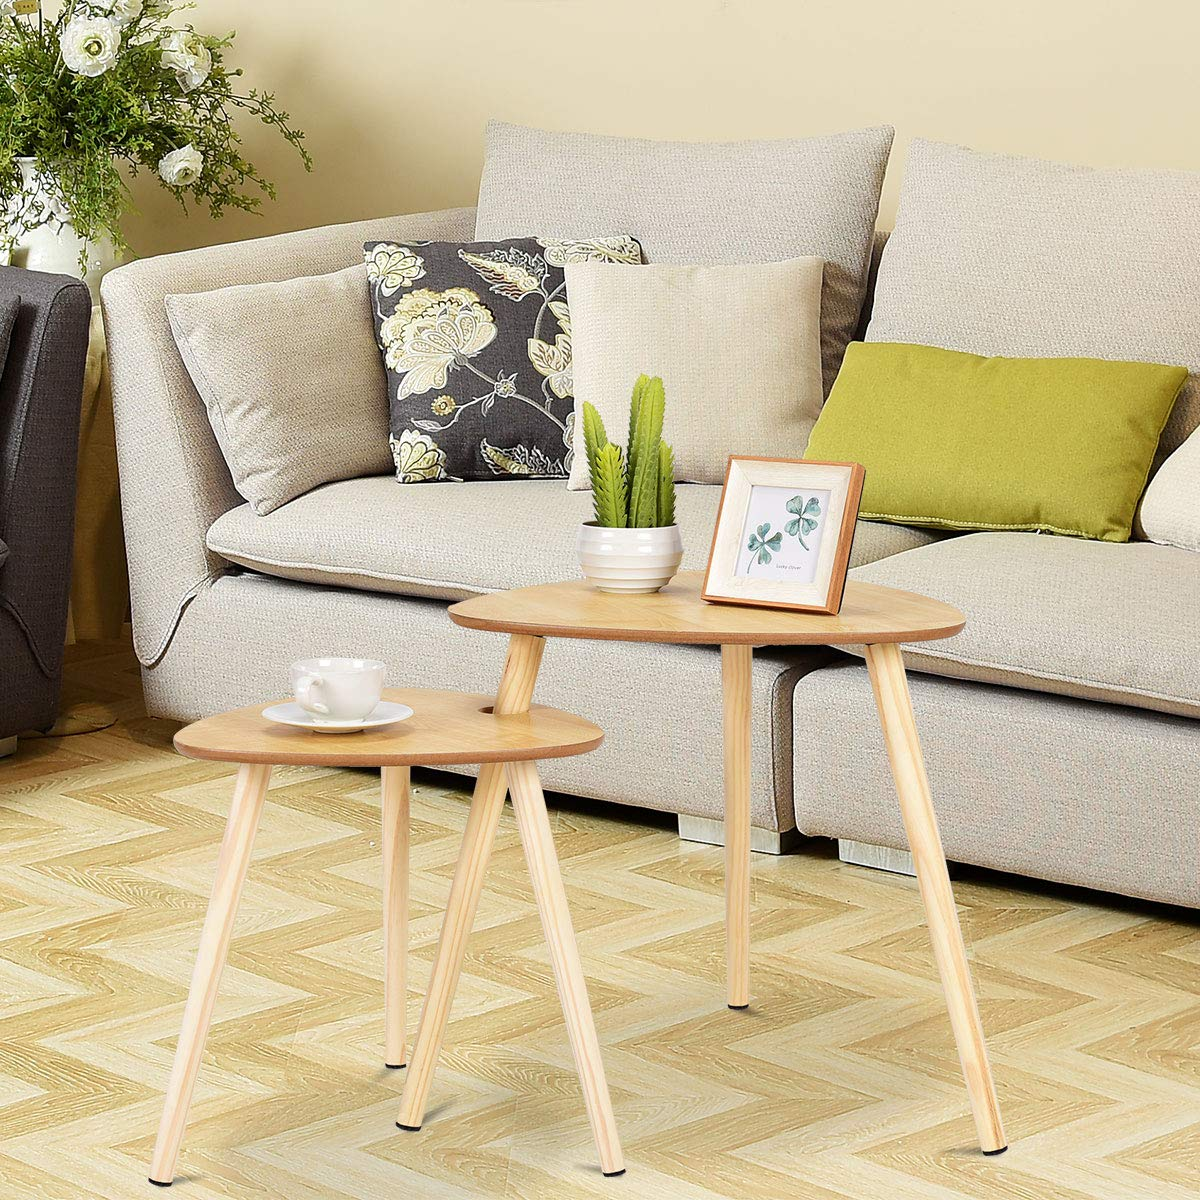 Giantex 2 Pcs Nesting Coffee Tables End Table Accent Sofa Side Table Home Living Room Office Modern D cor Coffee Table w Wooden Leg